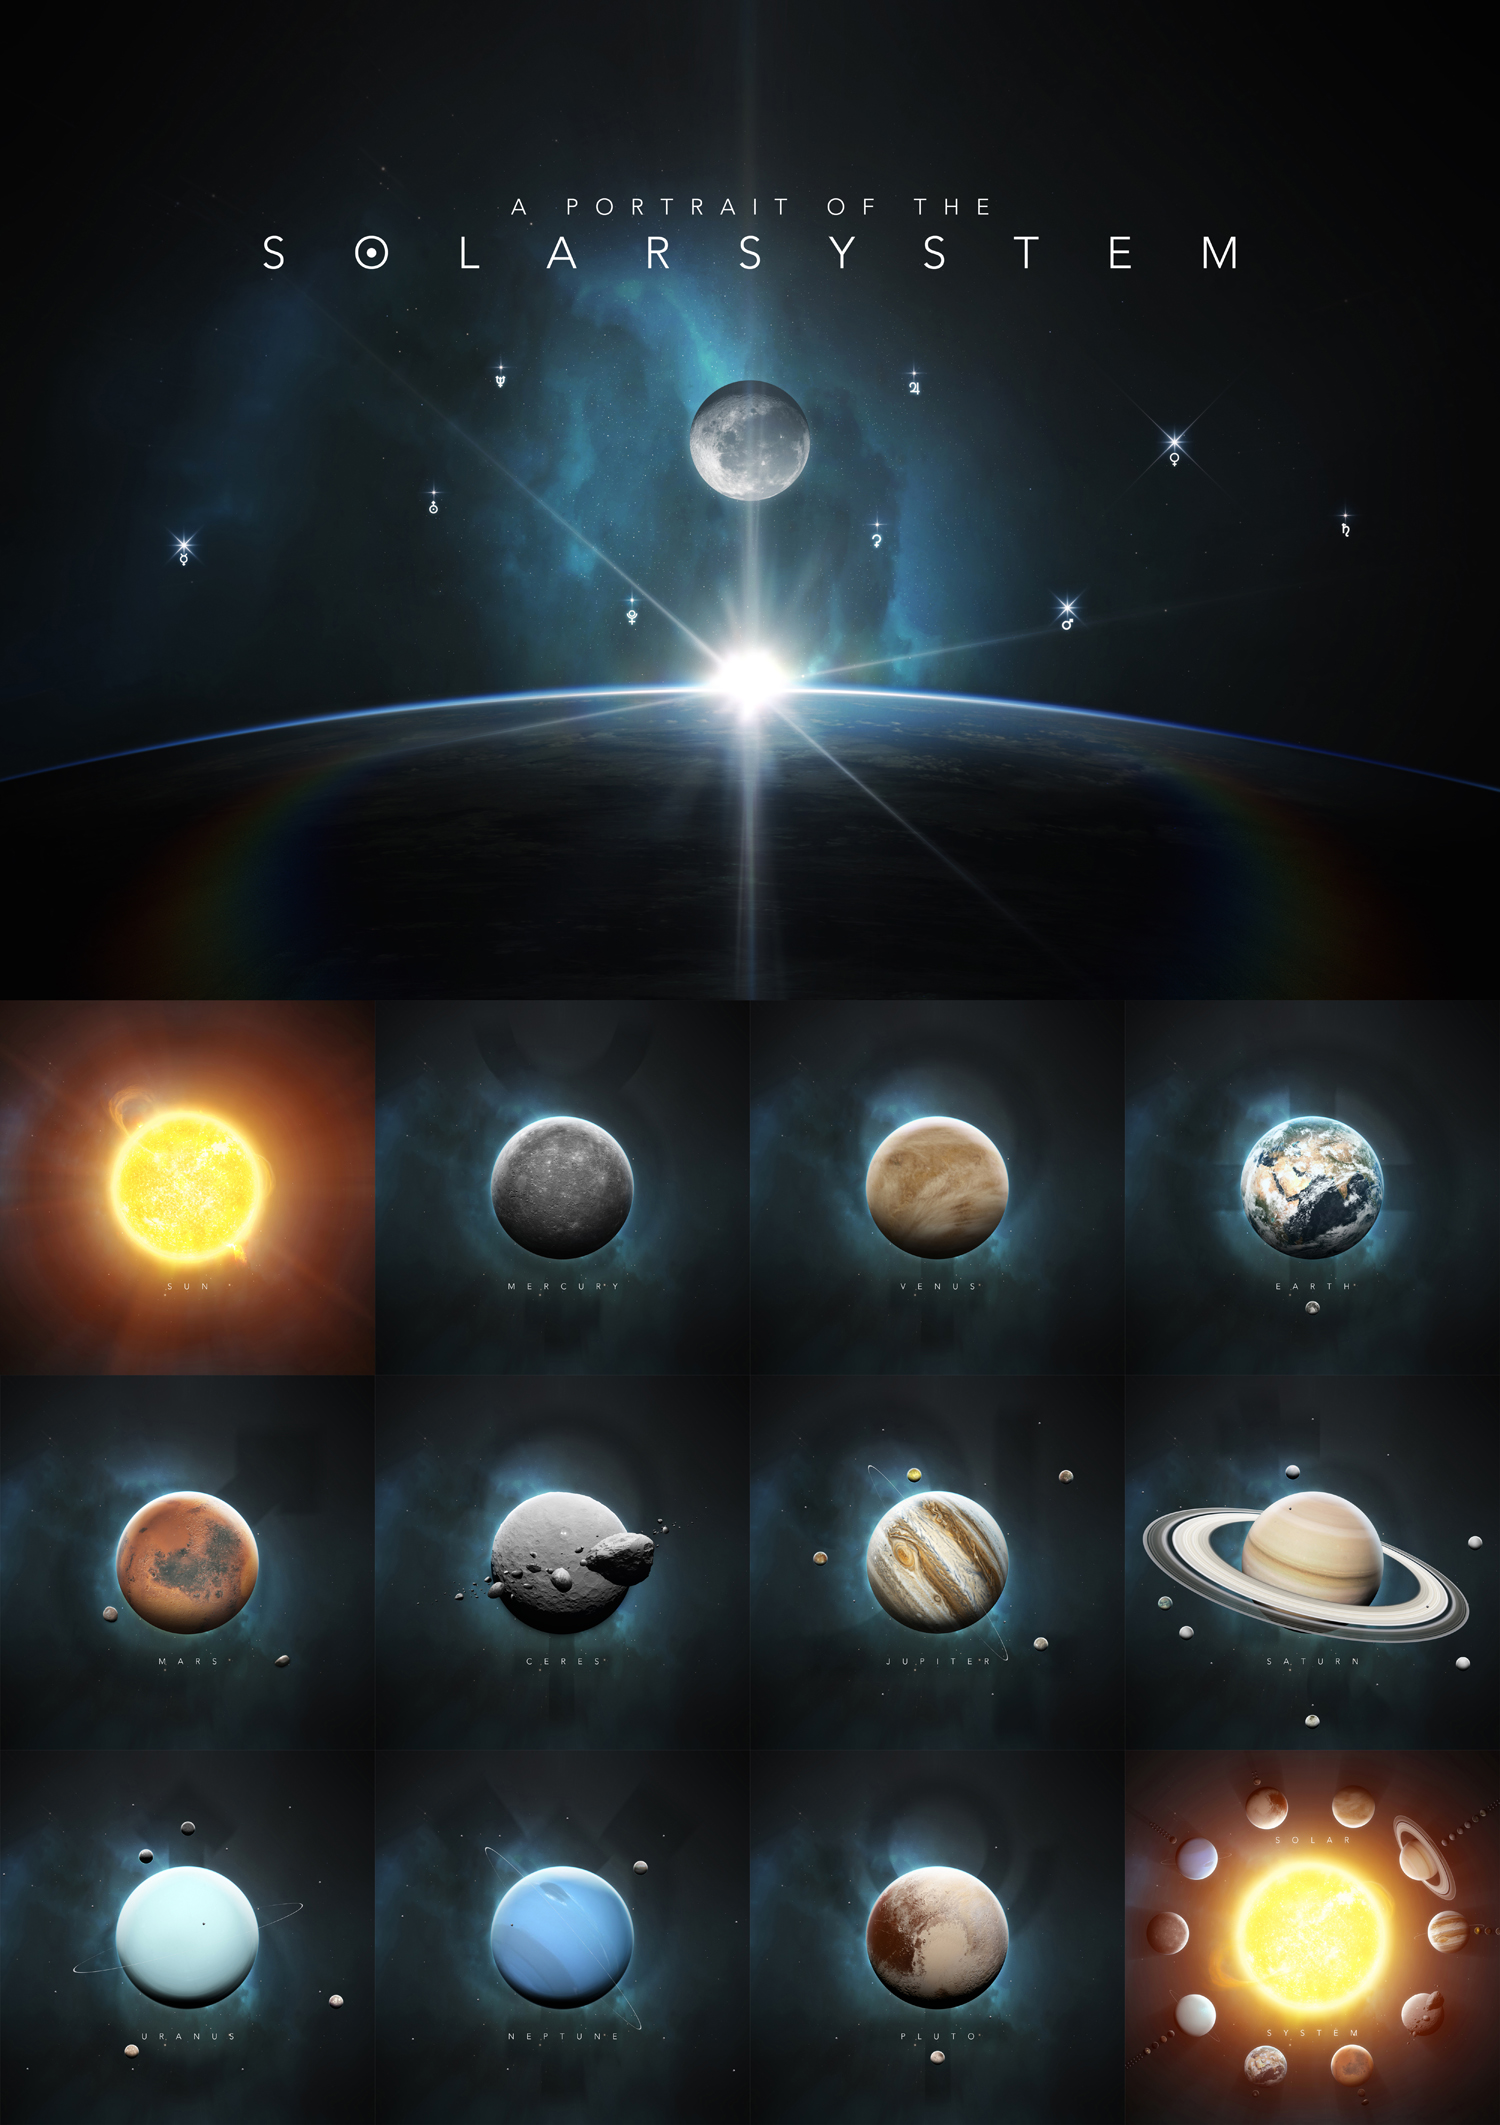 Calendar: A Portrait of the Solar System by TobiasRoetsch